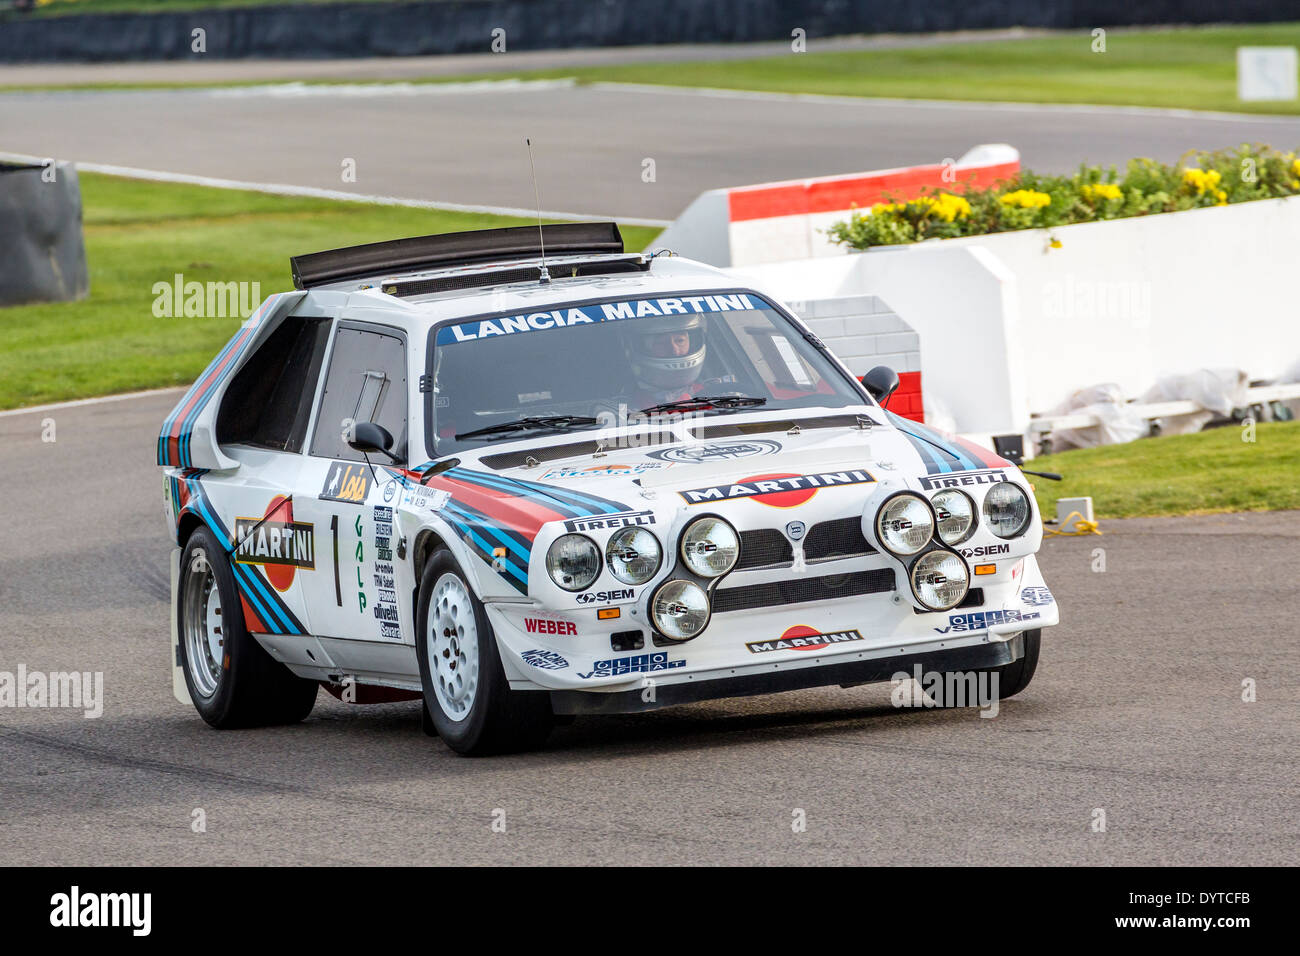 https://c8.alamy.com/comp/DYTCFB/1985-lancia-delta-s4-group-b-rally-car-with-driver-henry-pearman-72nd-DYTCFB.jpg